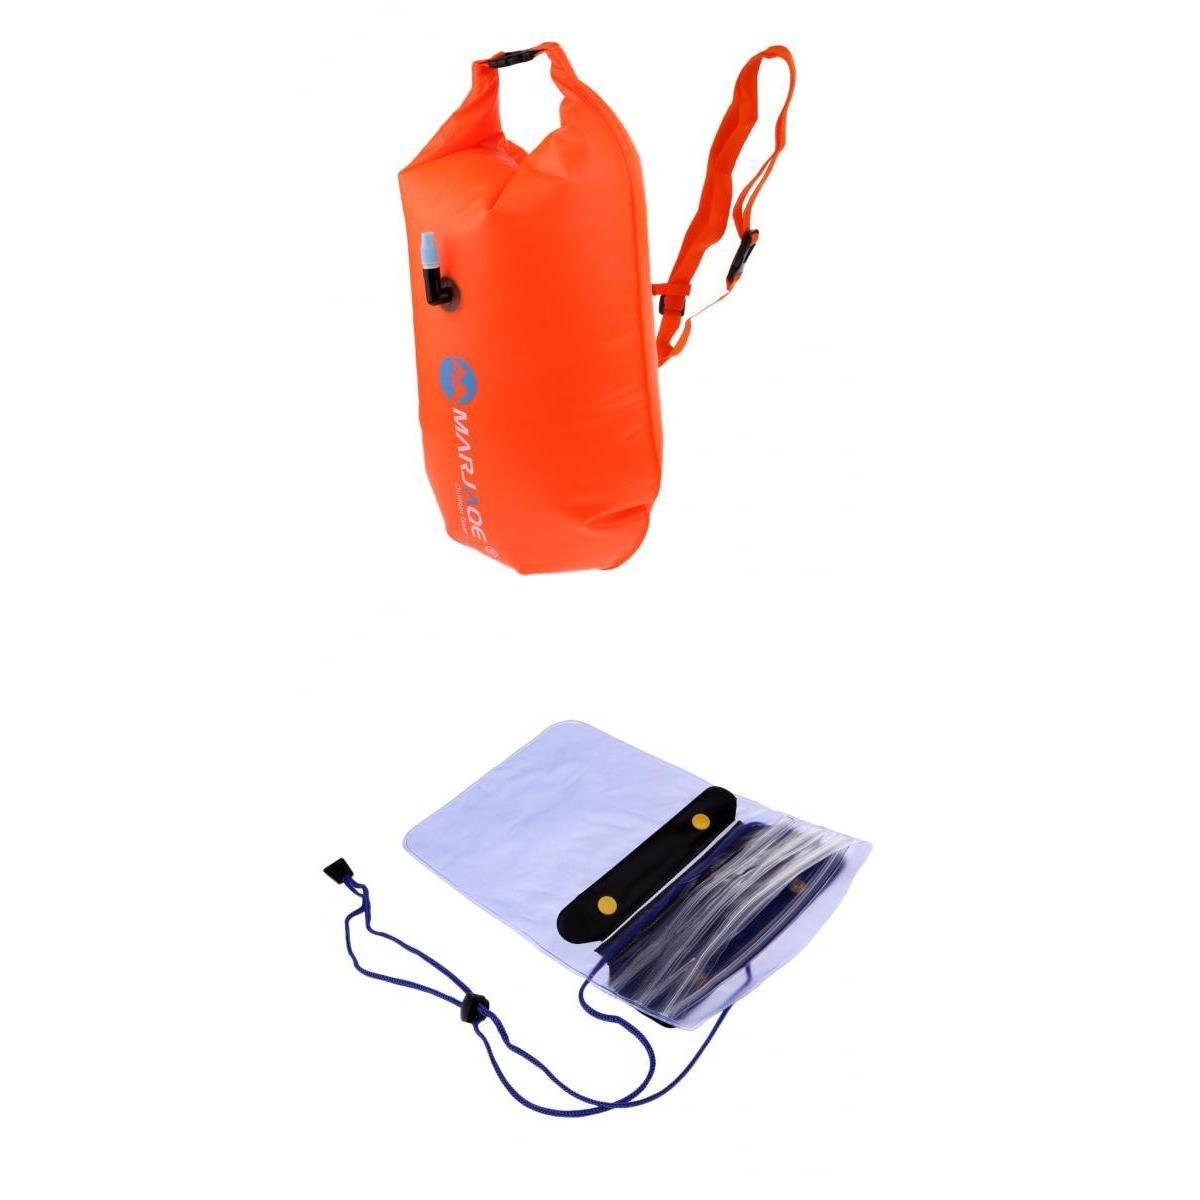 MagiDeal Orange Inflatable Dry Bag Open Water Swim Float Tow Dry Bag & Waterproof Phone Pouch Cover Case Holder Keeper